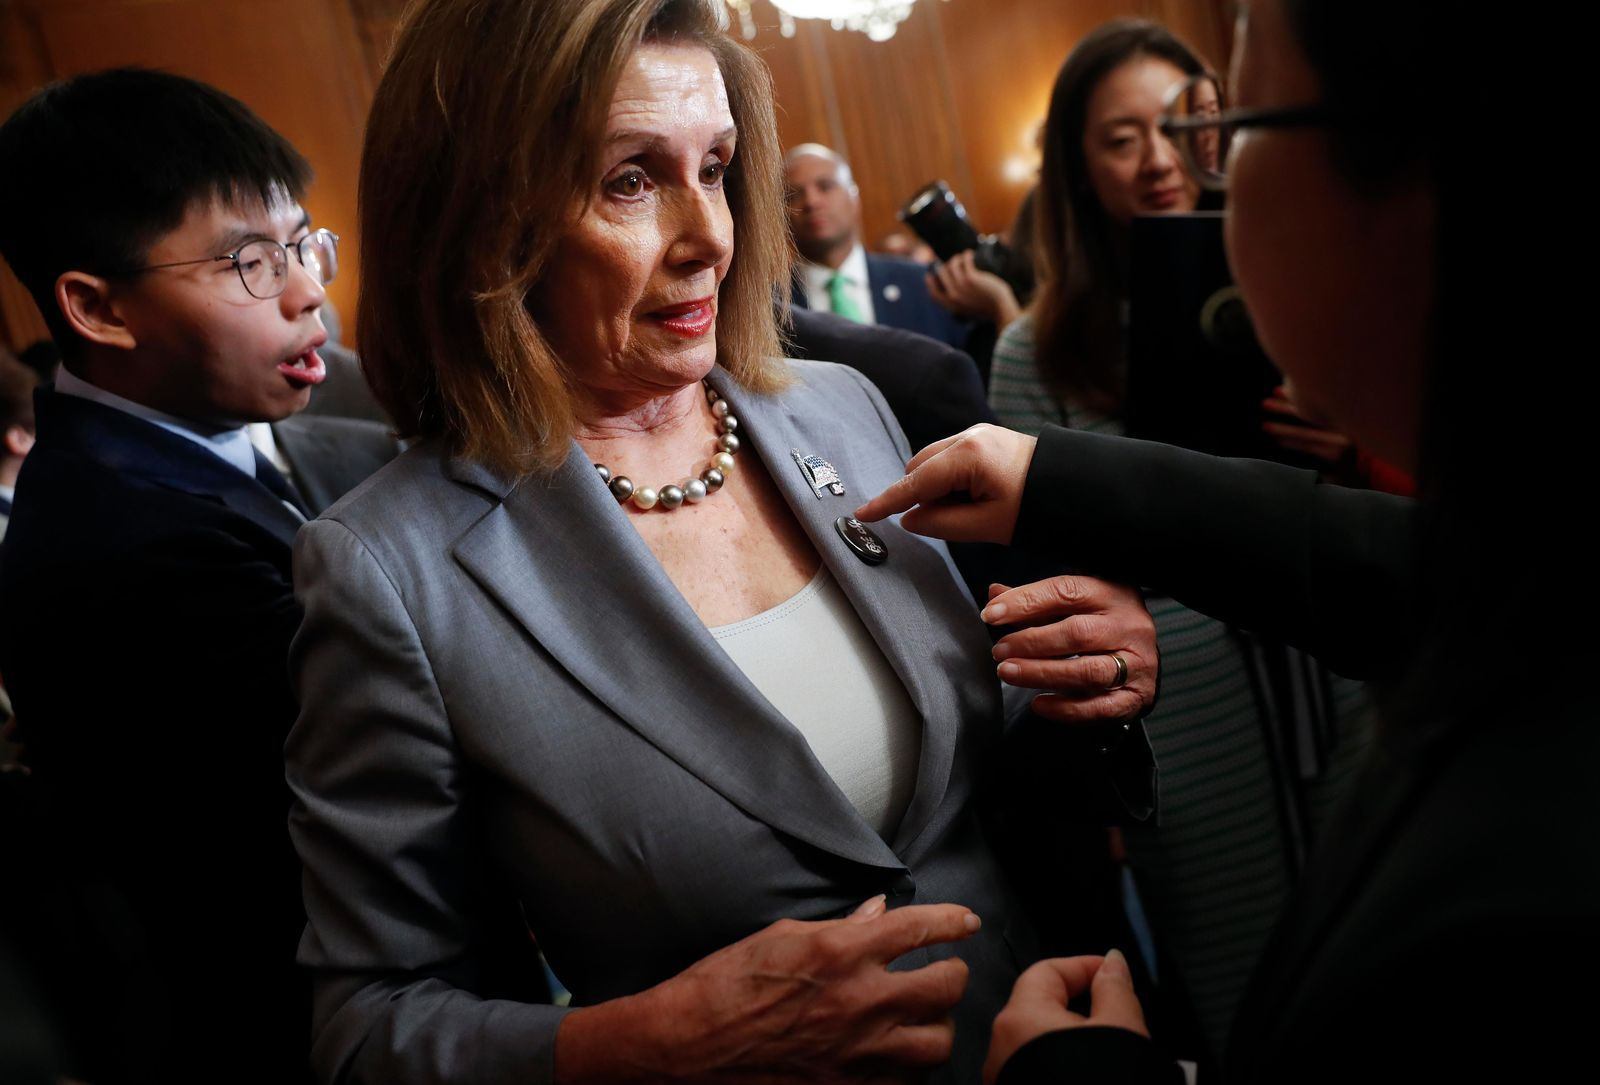 House Speaker Nancy Pelosi is given a lapel pin by a Hong Kong activist following a news conference on human rights in Hong Kong on Capitol Hill in Washington, Wednesday, Sept. 18, 2019. Behind Pelosi is Hong Kong activist Joshua Wong. (AP Photo/Pablo Martinez Monsivais)